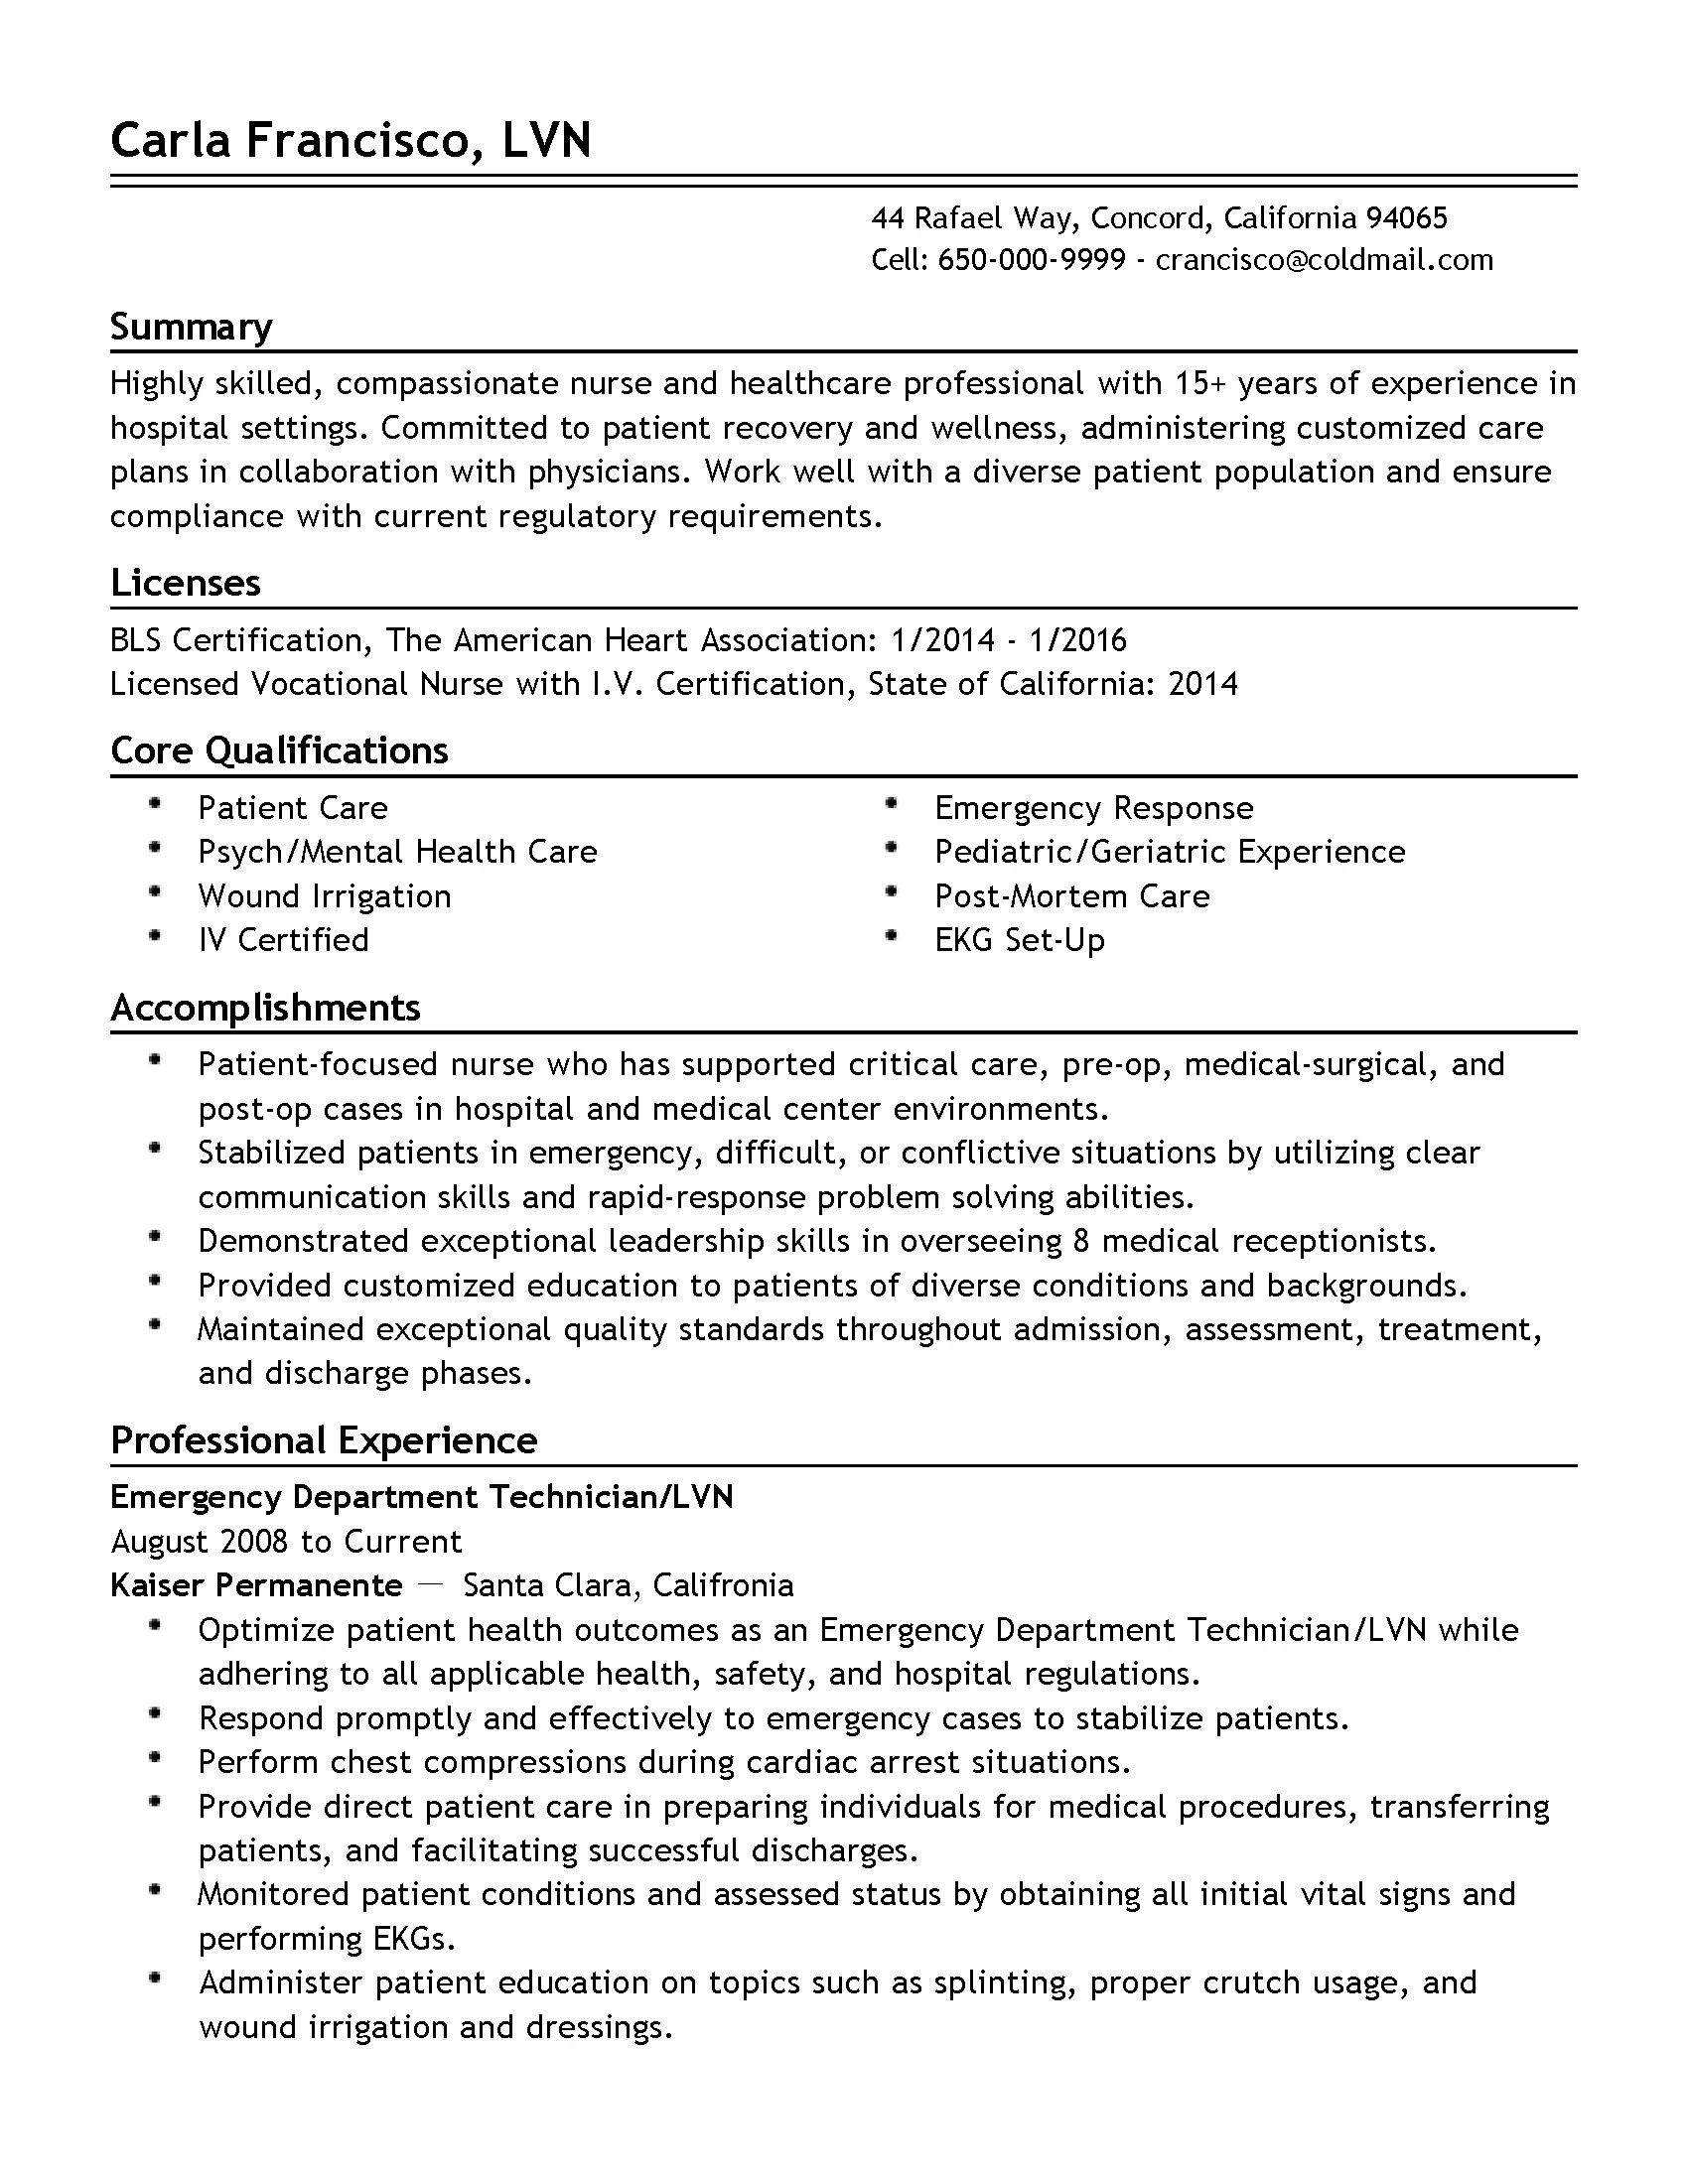 Emt Resume No Experience Template Professional Emergency Department Technician Templates To